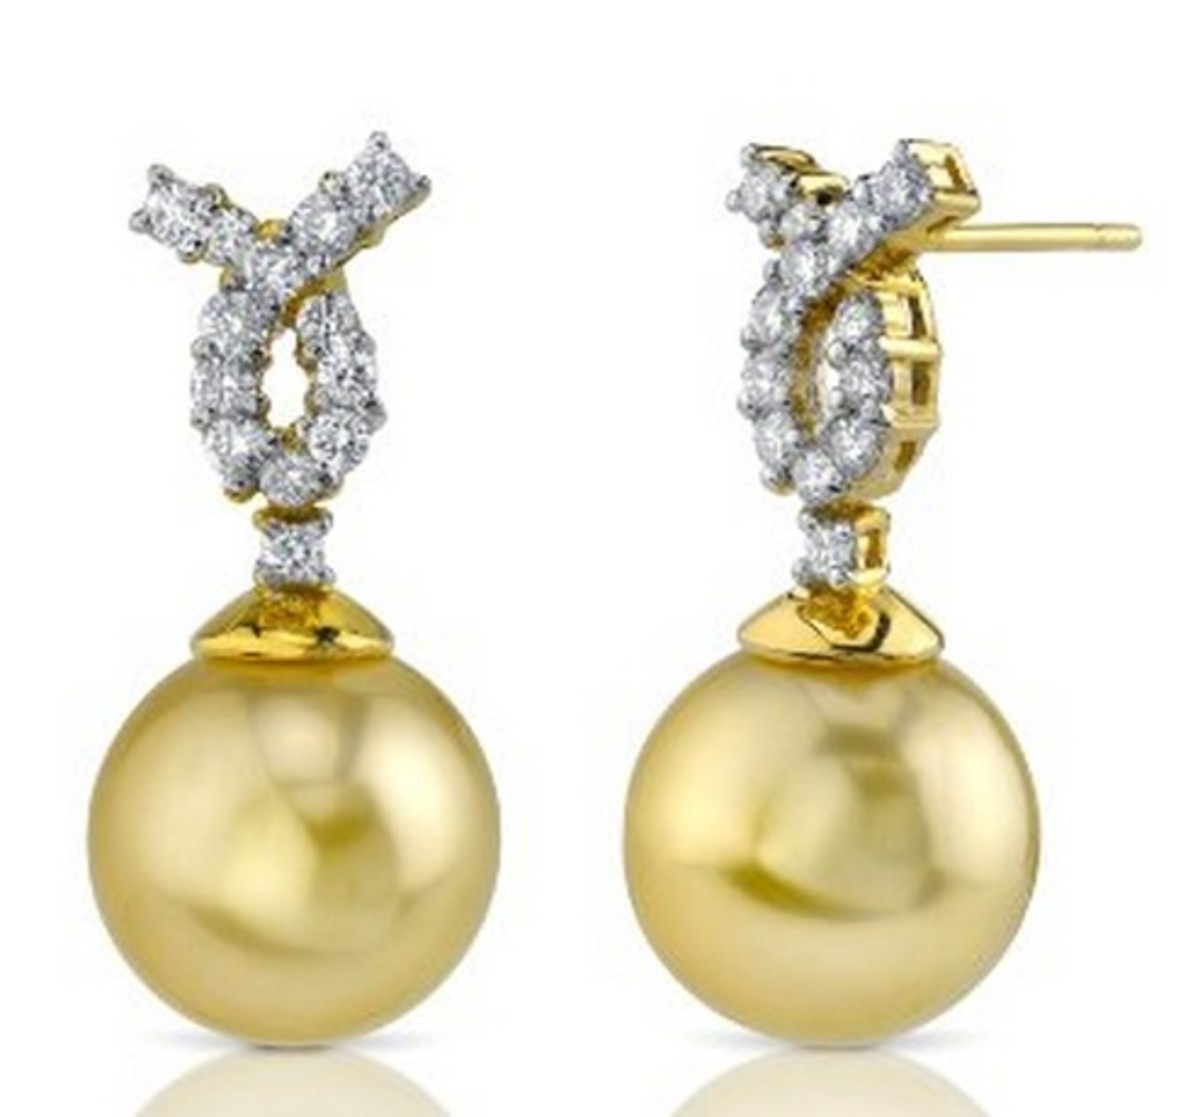 18k Gold, 47 carats Cross-over Pearl Earrings